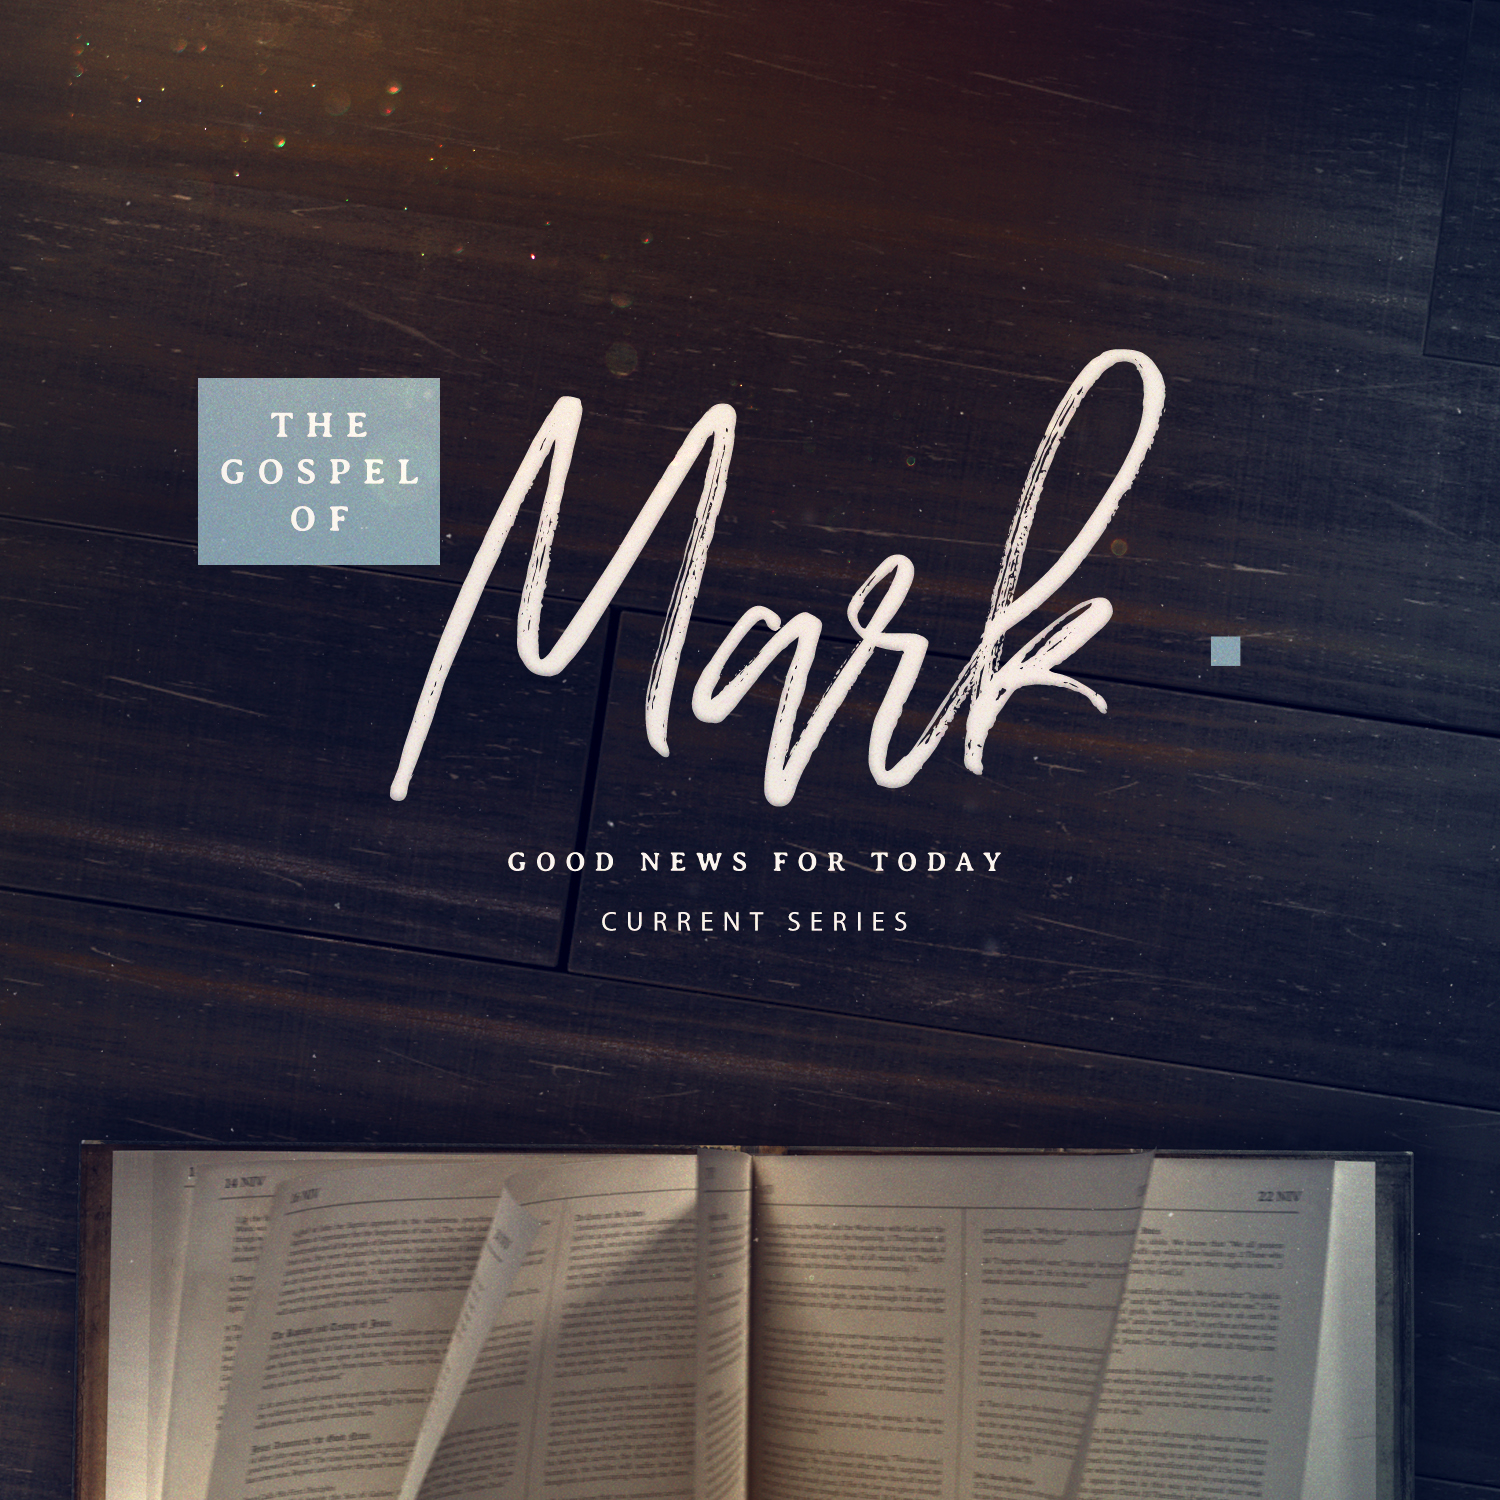 An image of the gospel of Mark